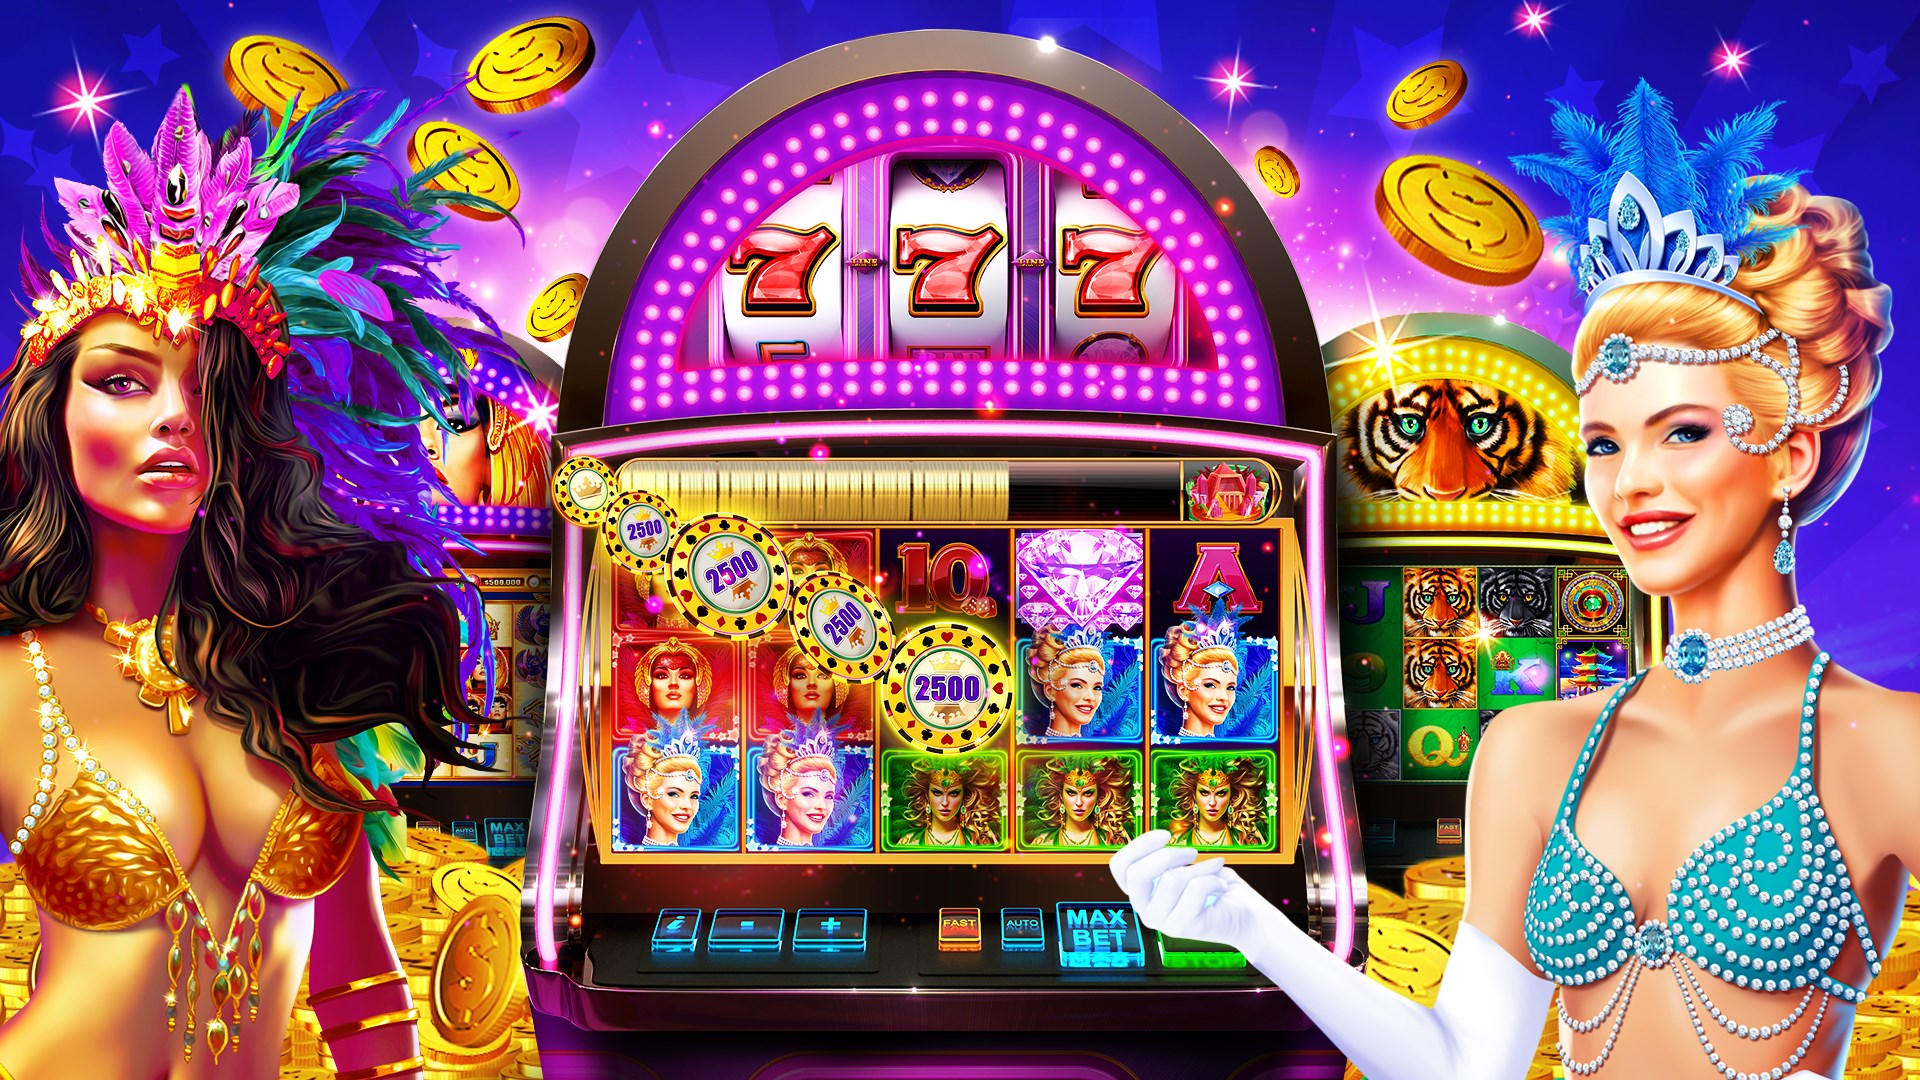 House Of Fun Casino Slots